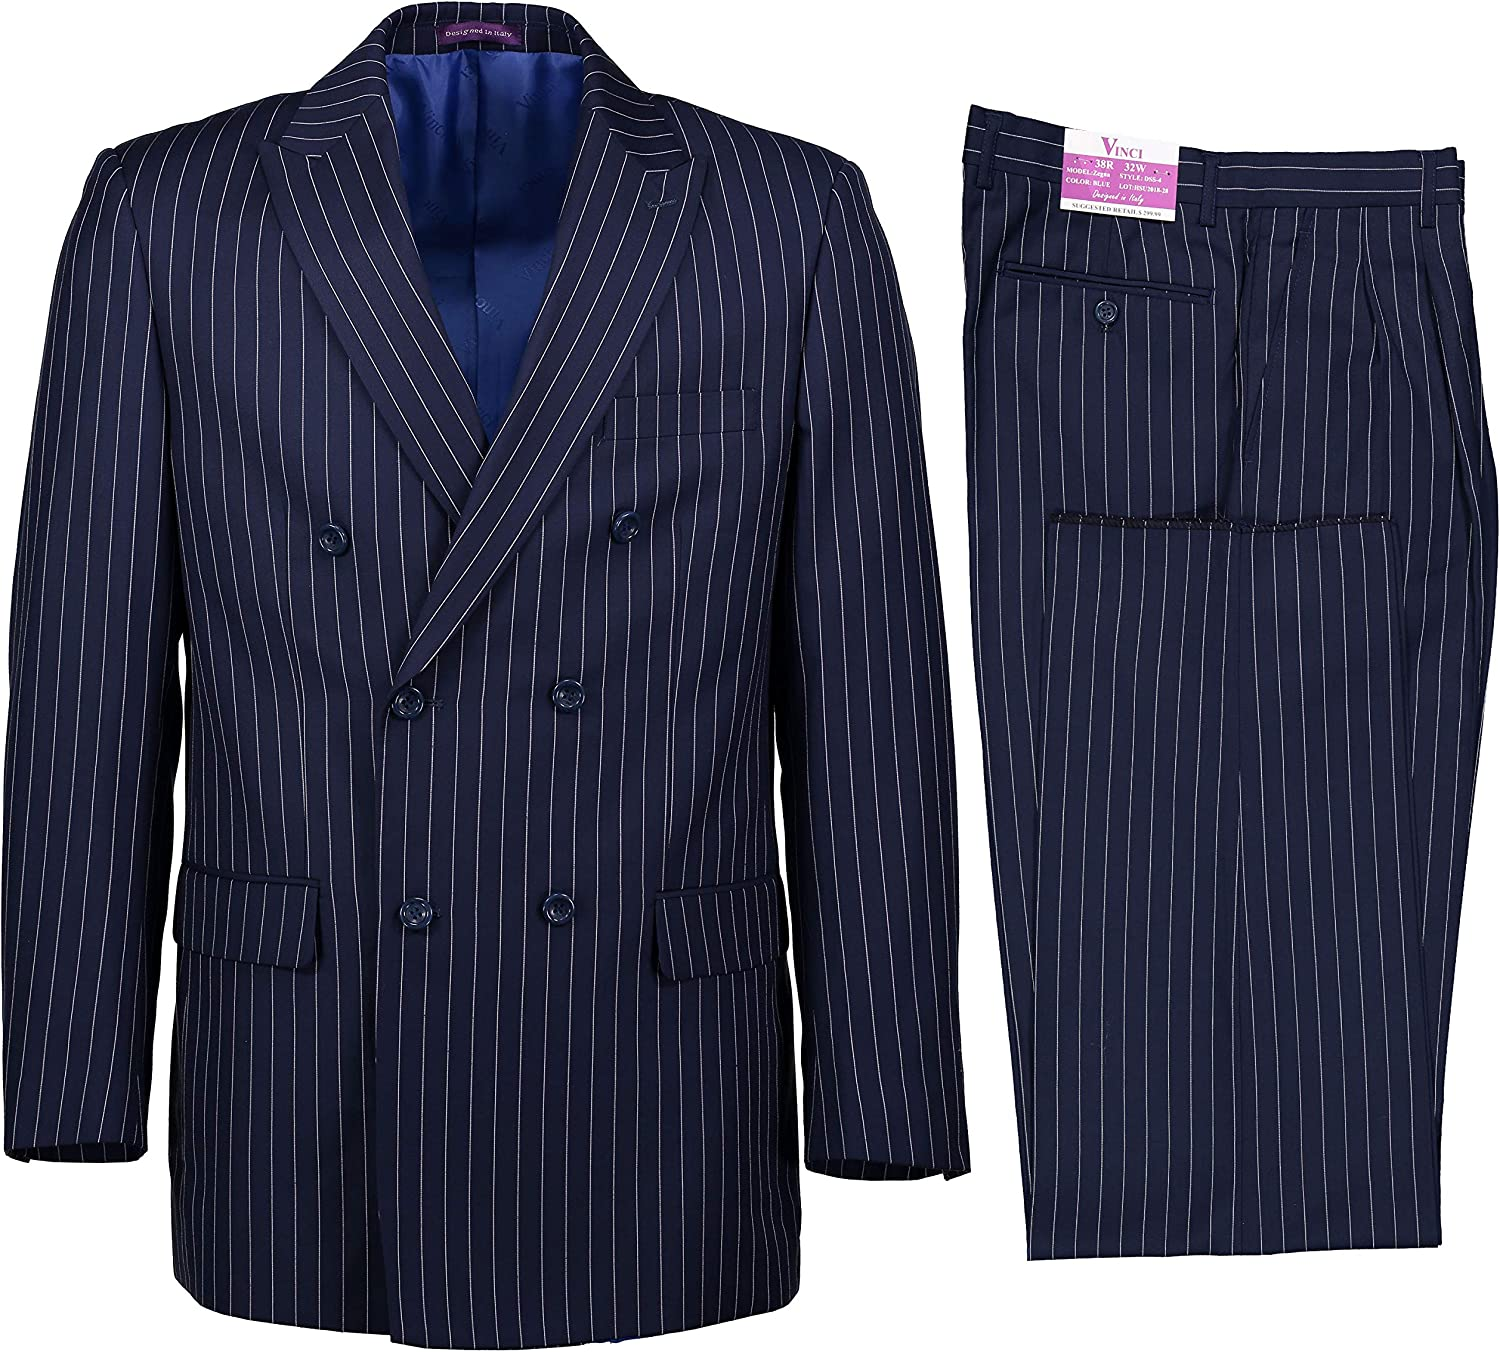 1920s Men's Clothing VINCI Mens Gangster Pinstriped Double Breasted 6 Button Classic Fit Suit New $89.00 AT vintagedancer.com